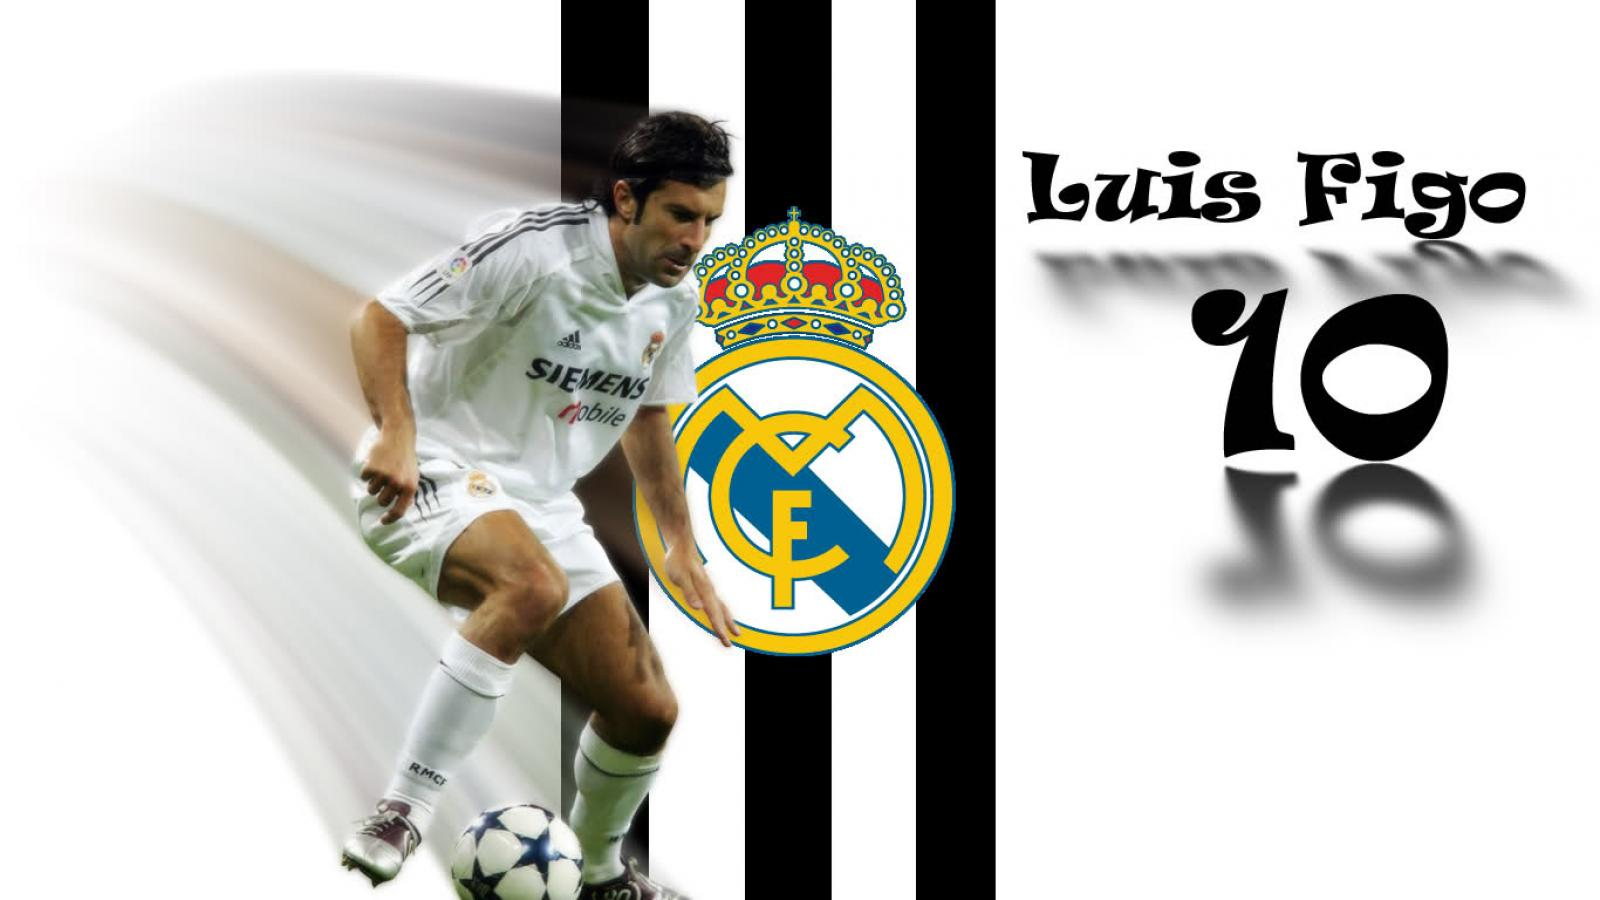 Luis Figo Wallpapers 1366x768 px 96ZDB62 WallpapersExpertcom 1600x900